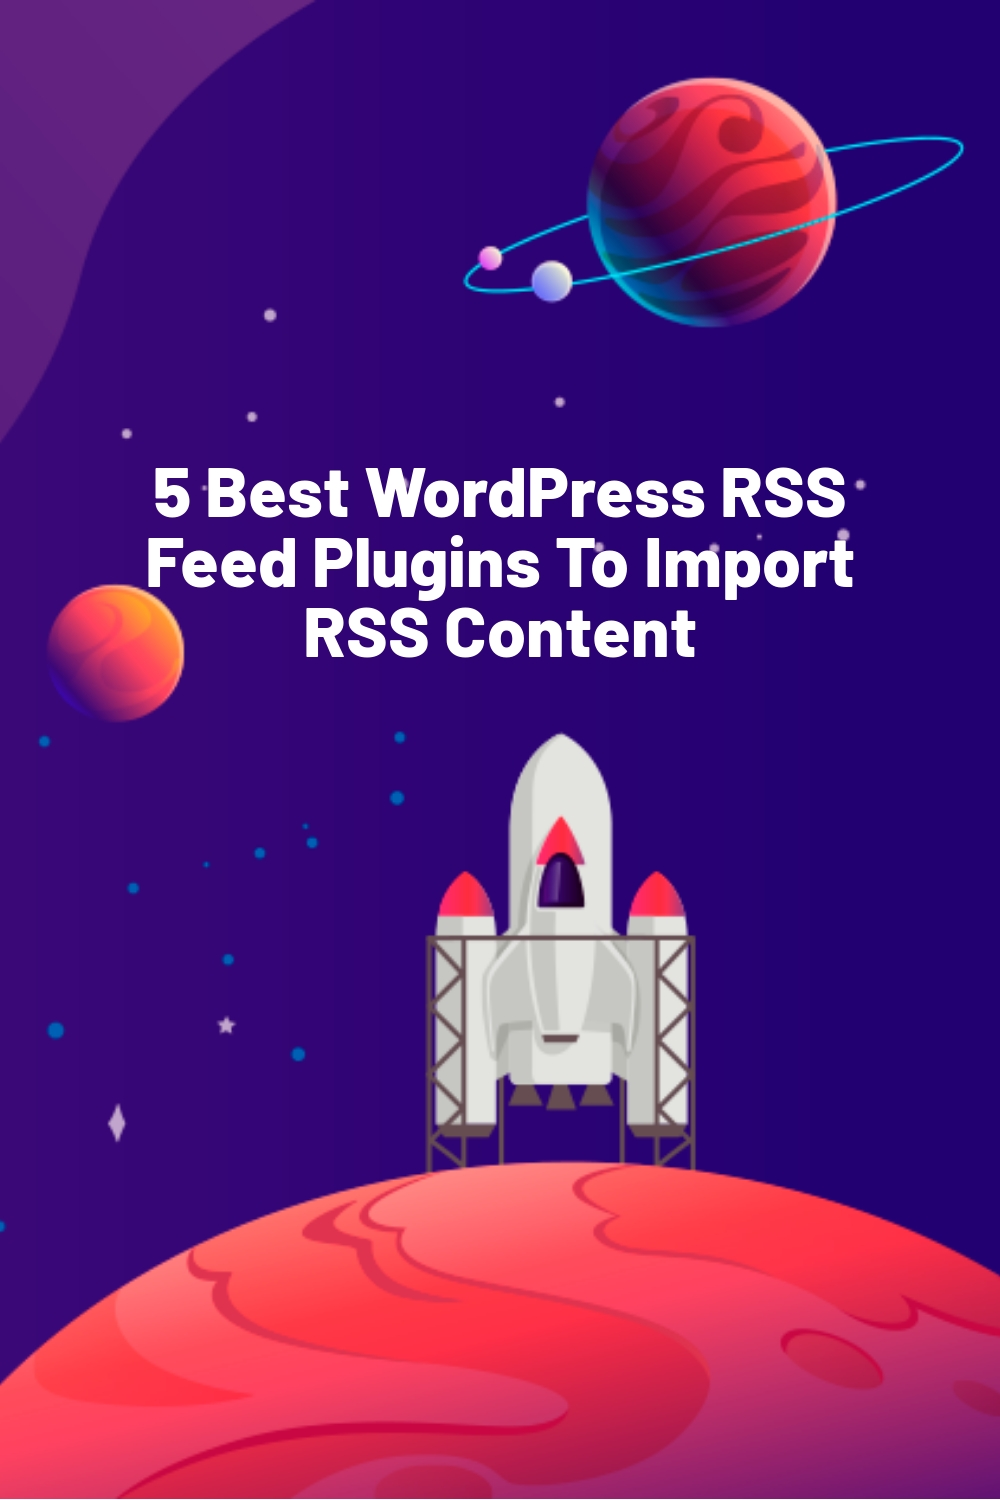 5 Best WordPress RSS Feed Plugins To Import RSS Content